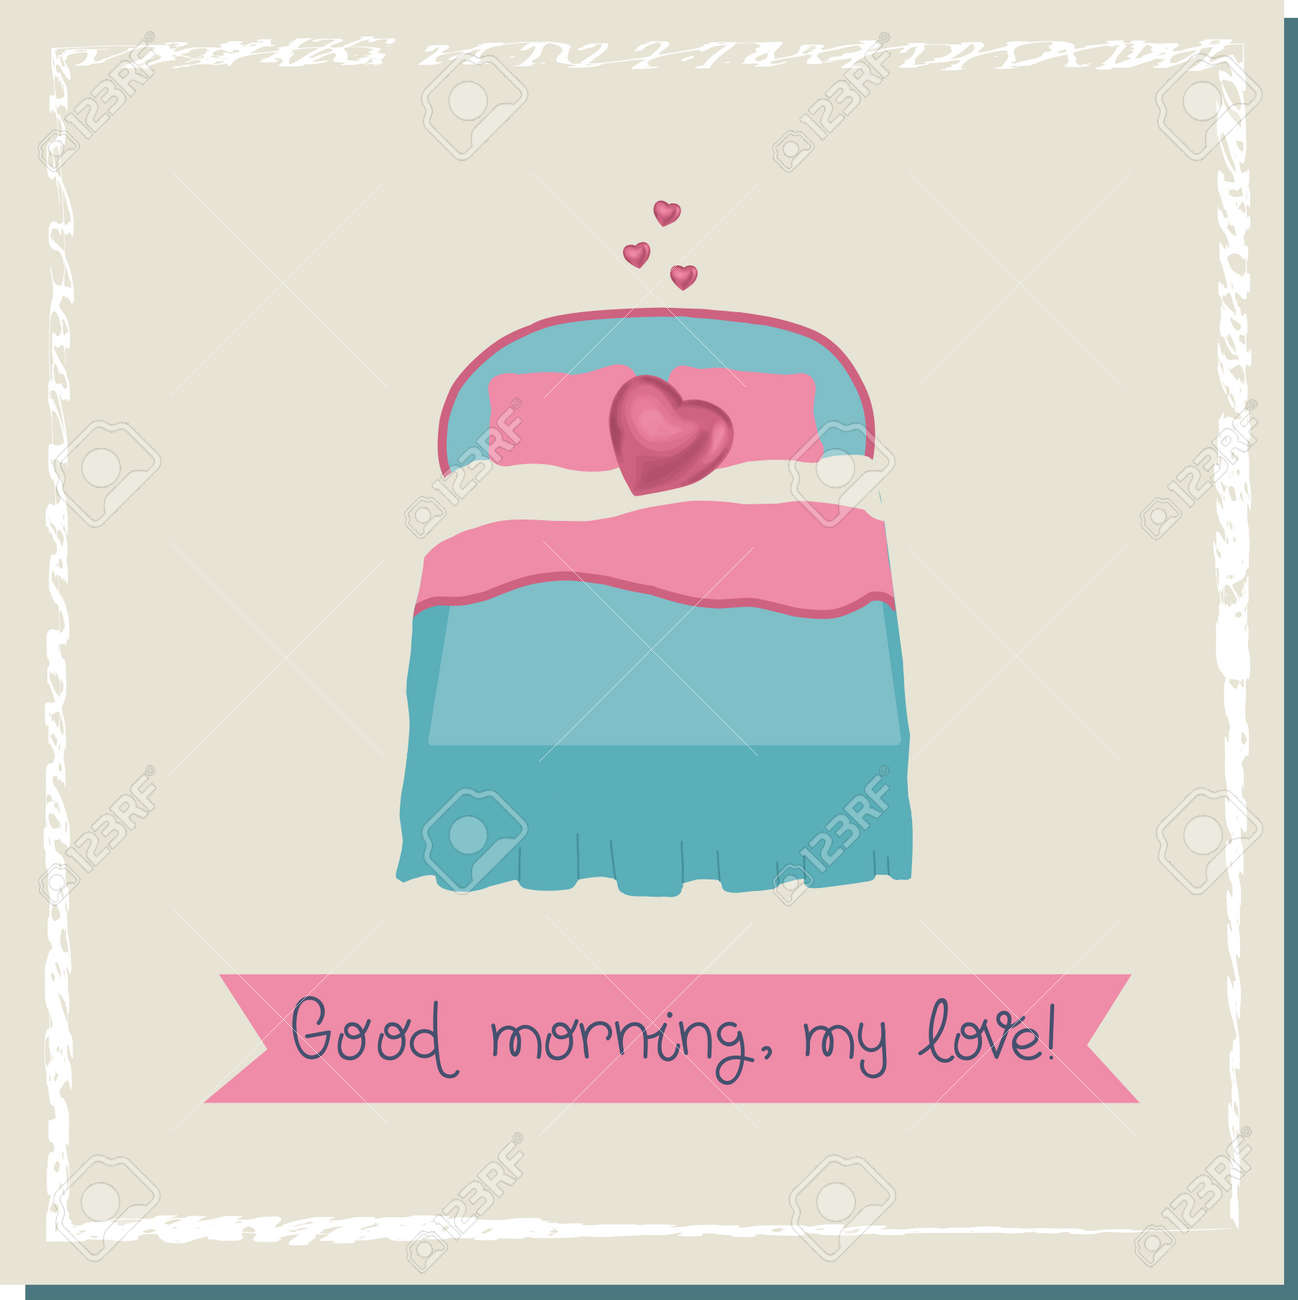 Bridal bed. Hearts over the bed. Love concept. Valentine's day poster square. Trendy illustration on the theme of love. Vector illustration. - 168195335